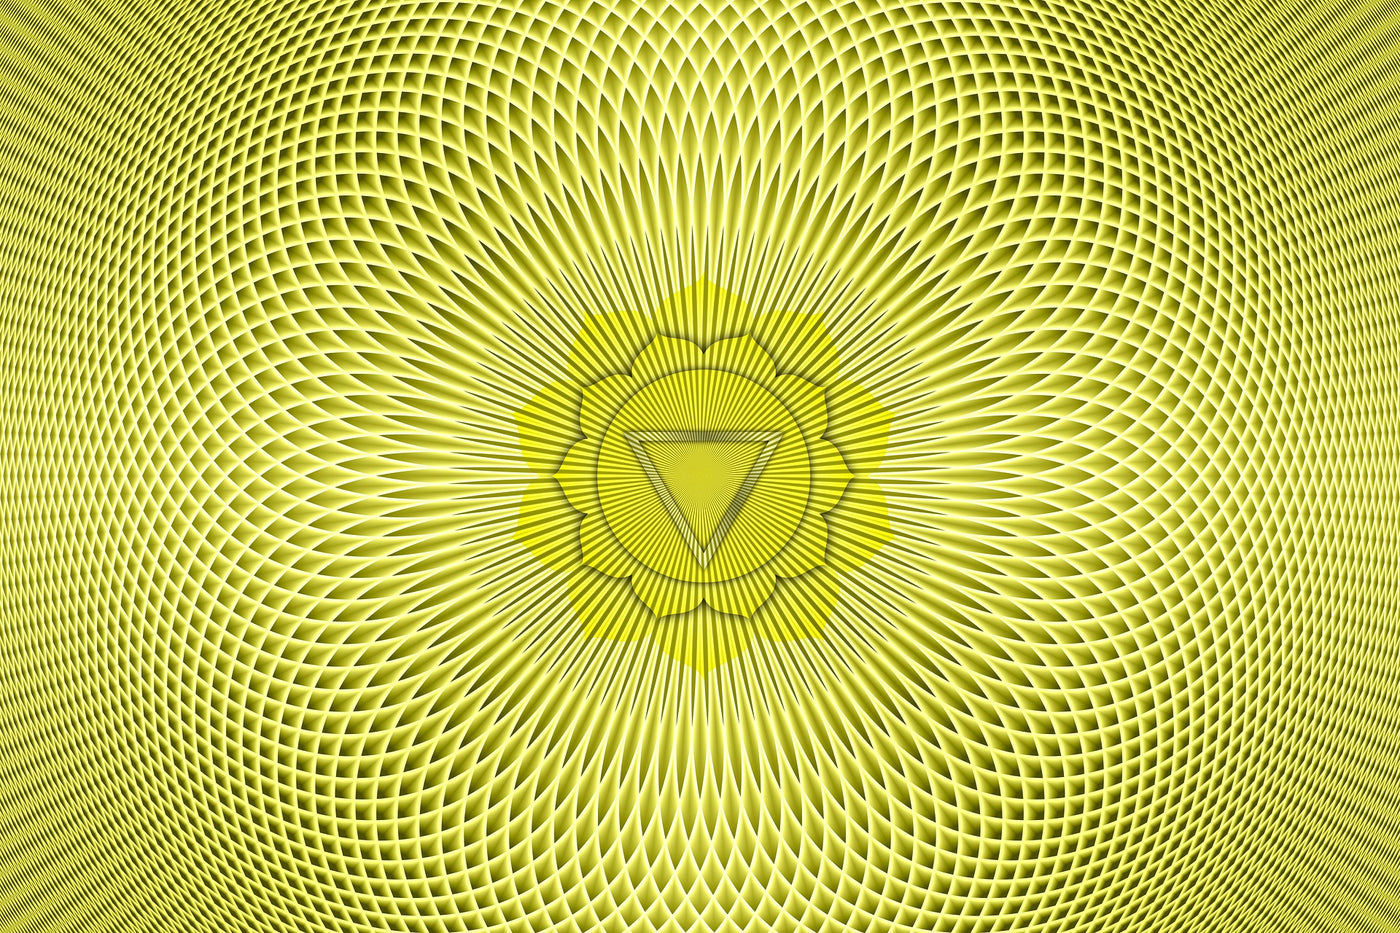 The Solar Plexus Chakra Package